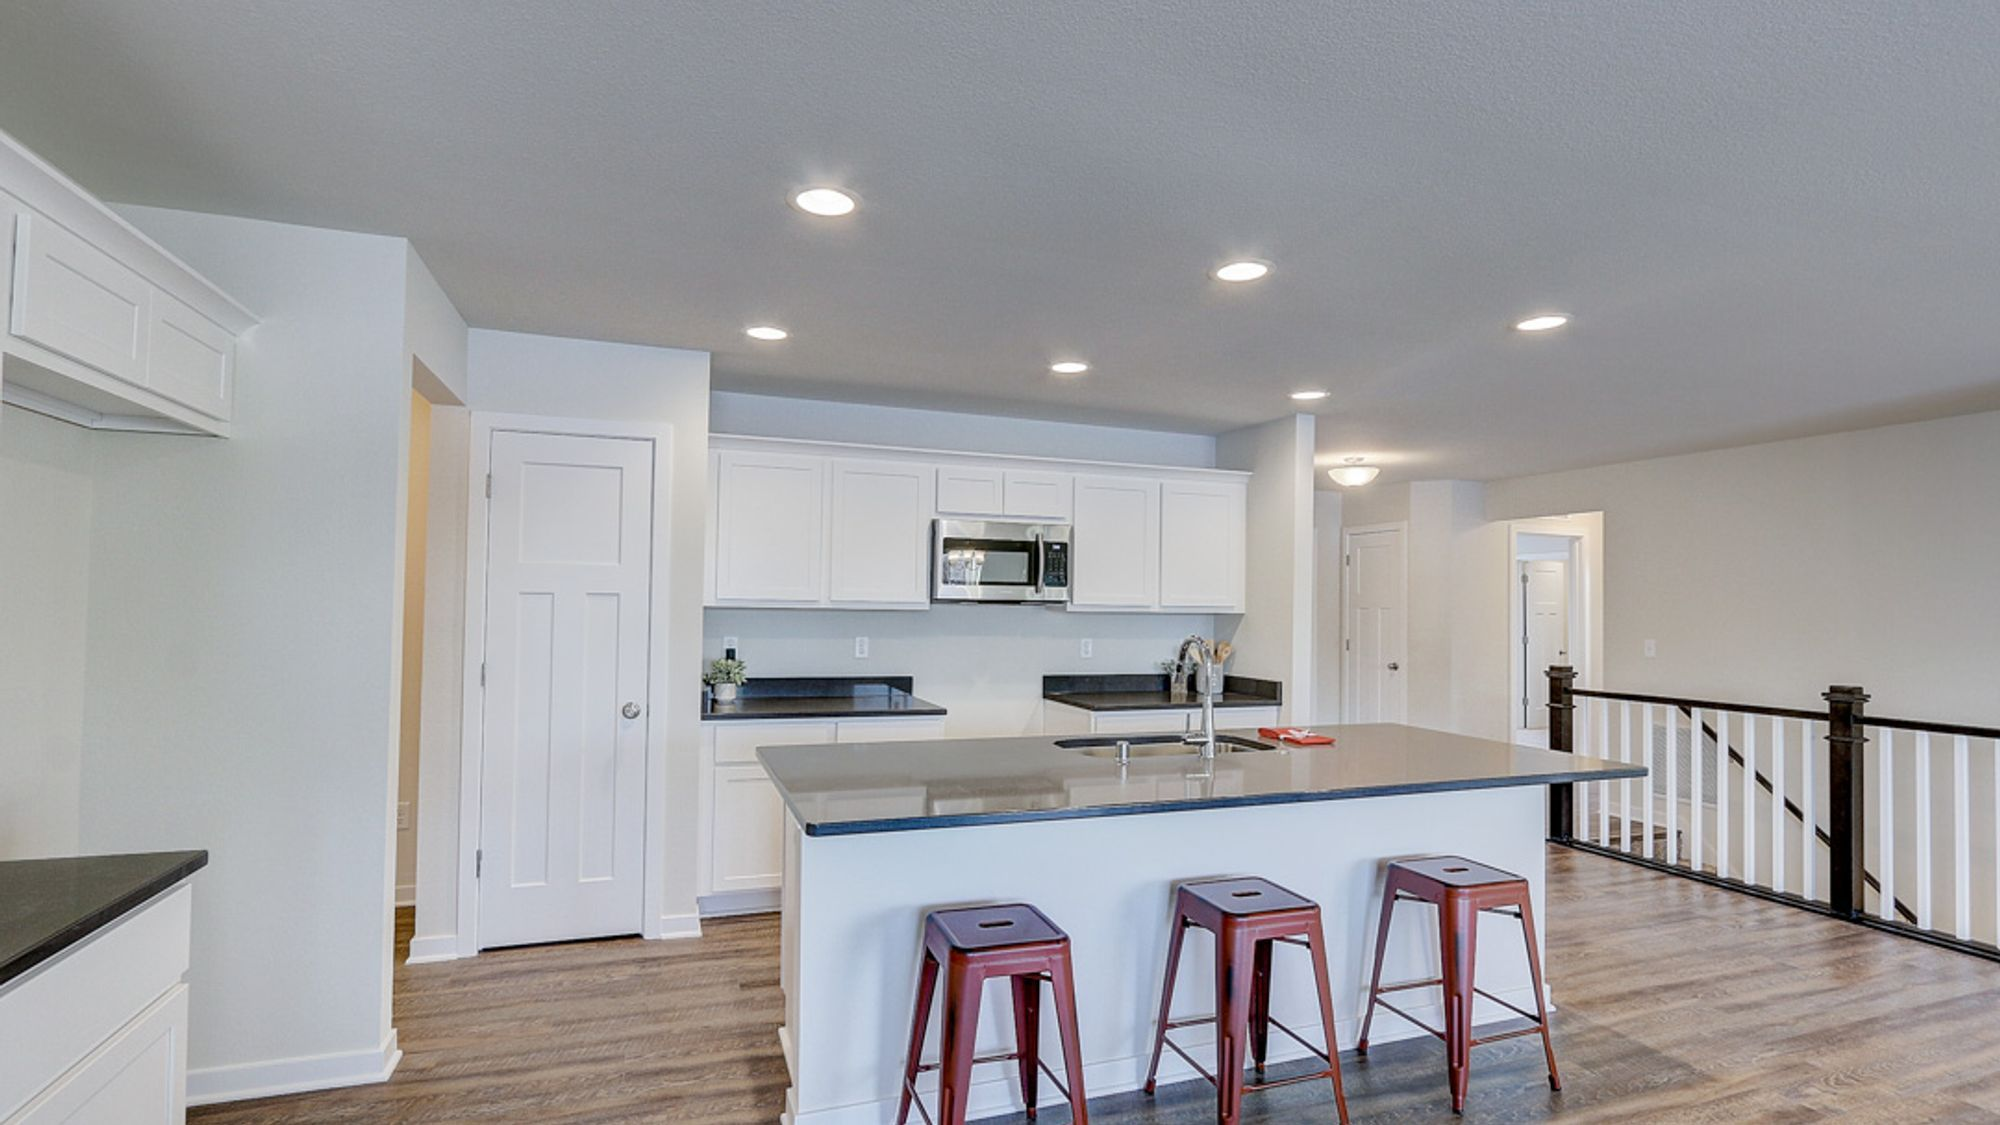 Kitchen featured in The Caspian By Harbor Homes in Washington-Fond du Lac, WI